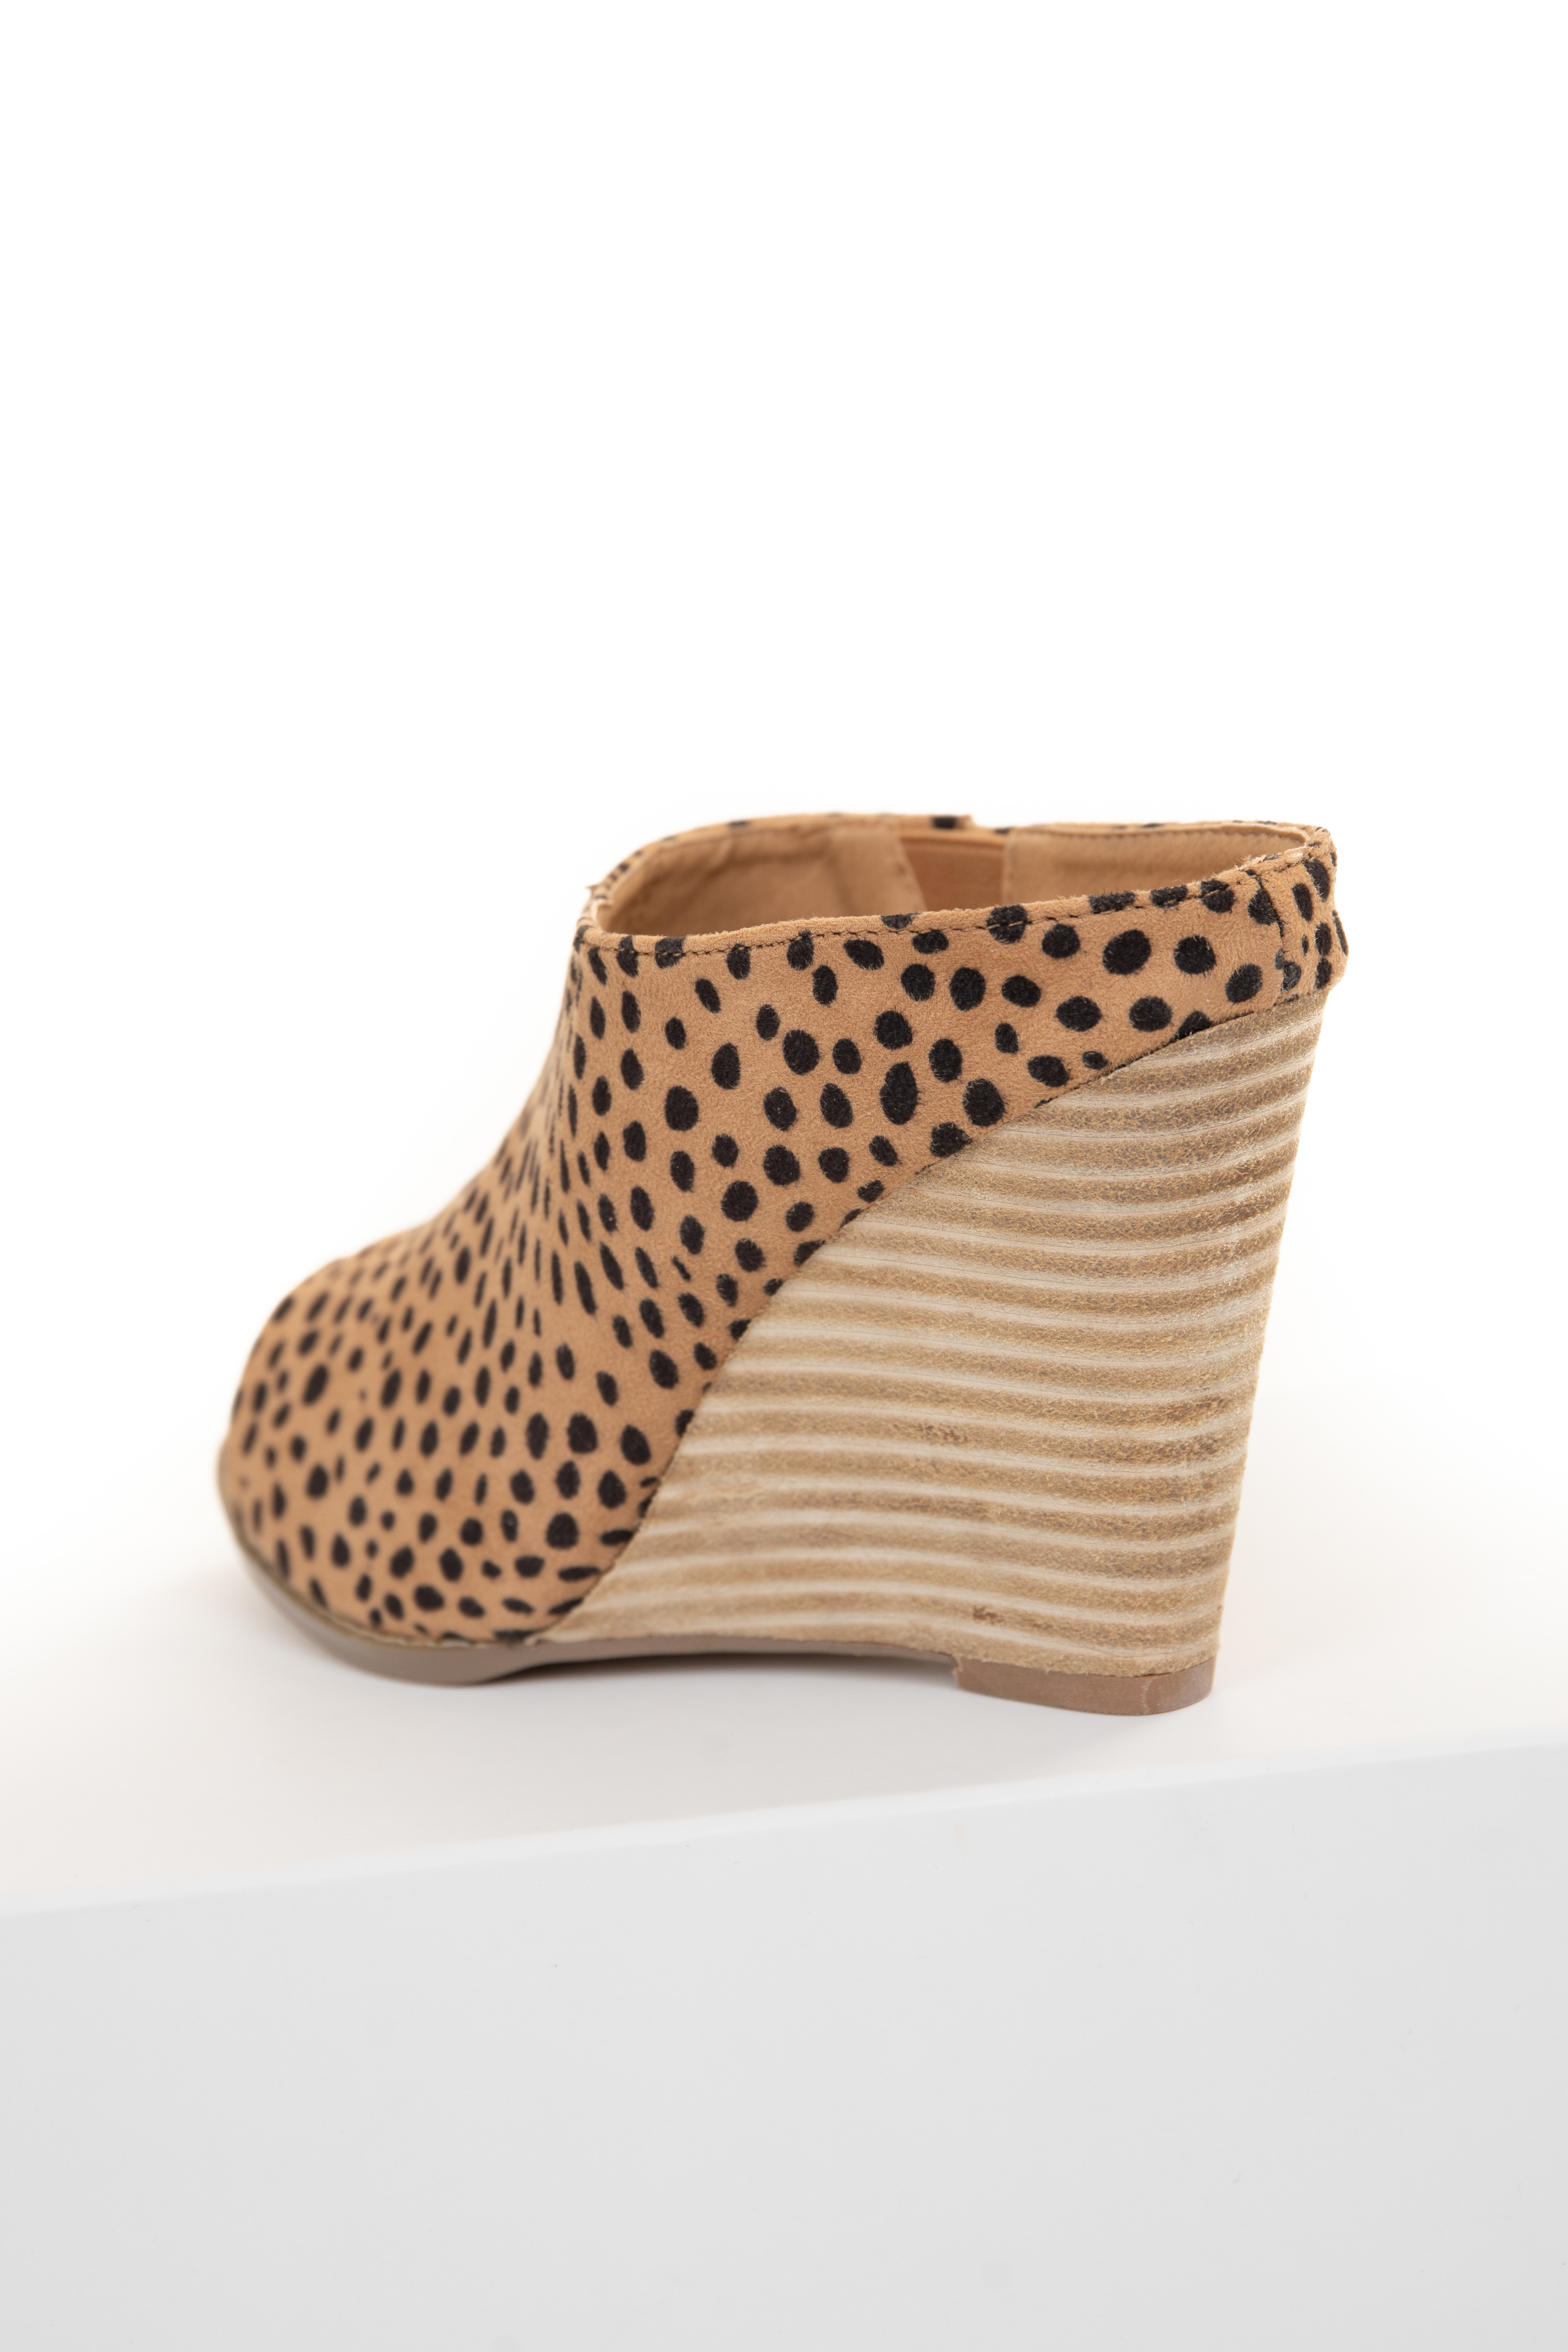 Beige and Black Cheetah Print Wedge Bootie with Open Toe